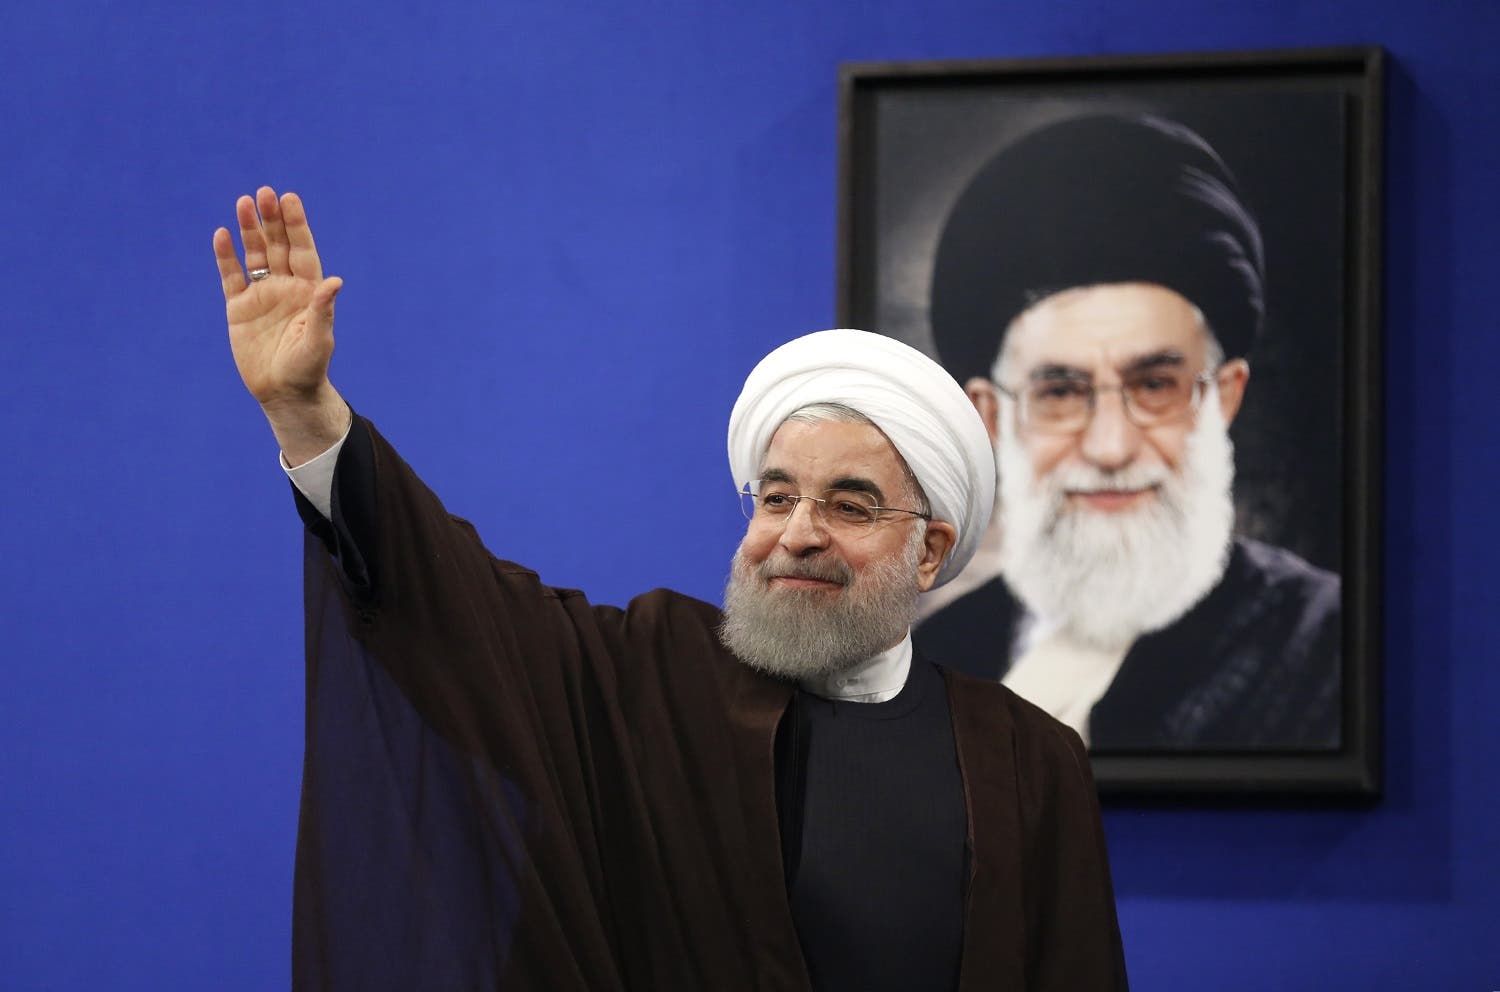 Newly re-elected Iranian President Hassan Rouhani gestures after delivering a televised speech in the capital Tehran on May 20, 2017. (AFP)